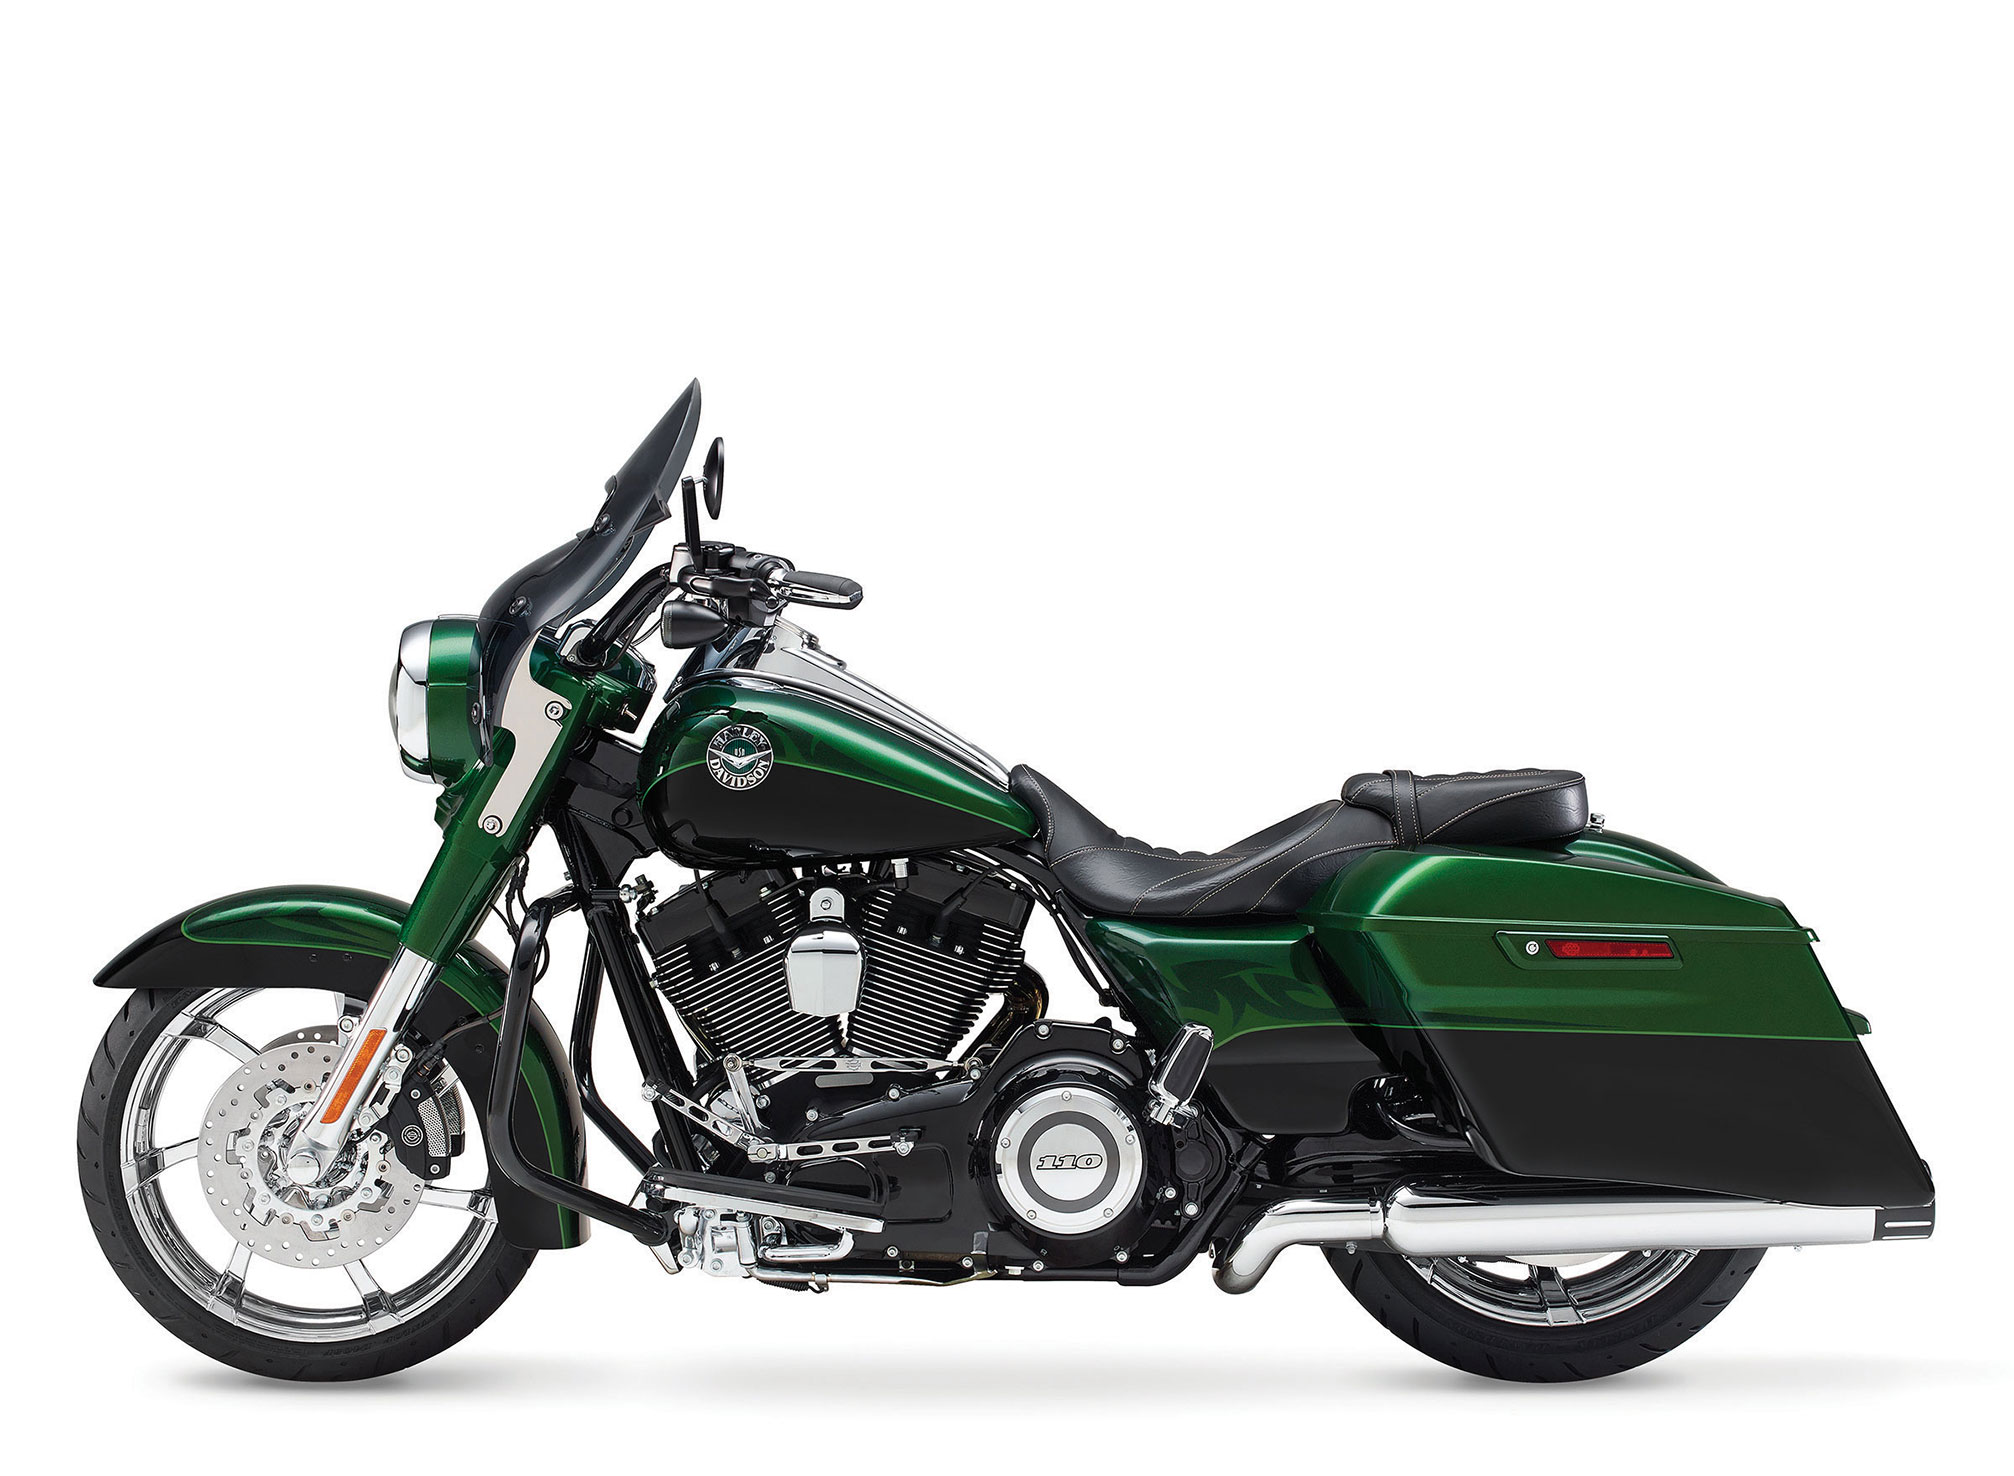 2014 Harley-Davidson FLHRSE5 CVO Road King Review